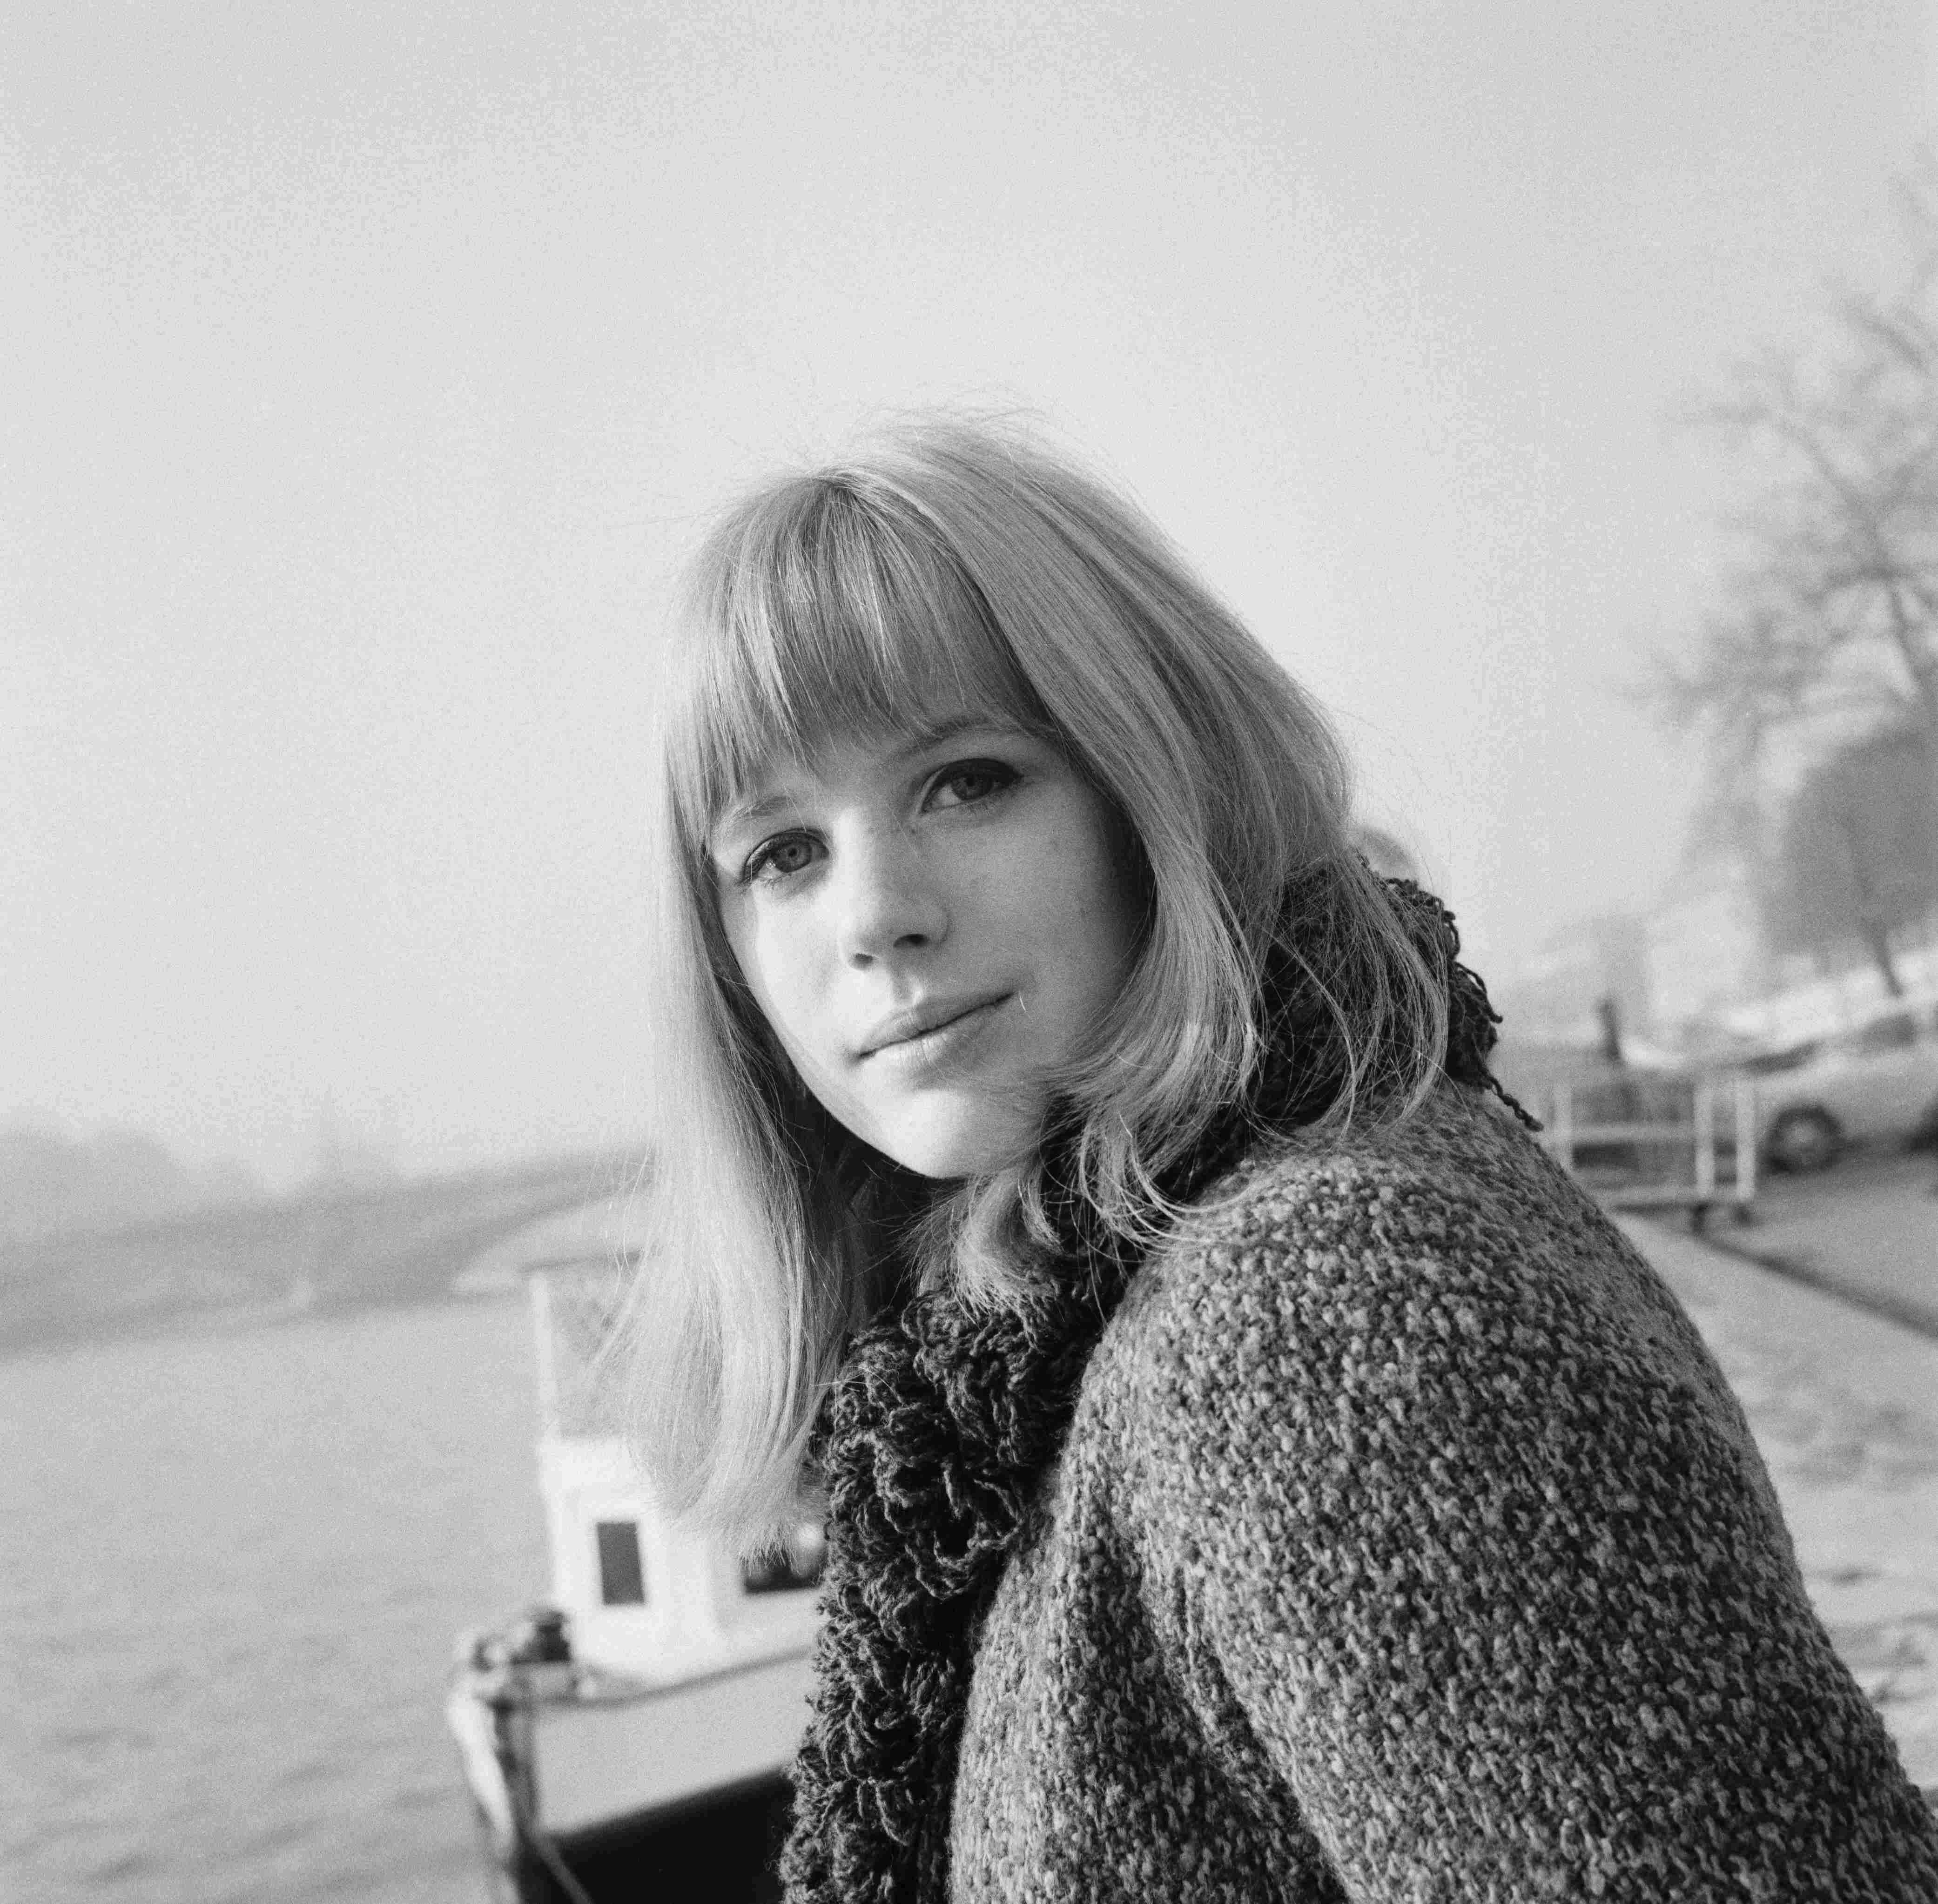 64abdb1531d Pictures of Marianne Faithfull - Flashbak